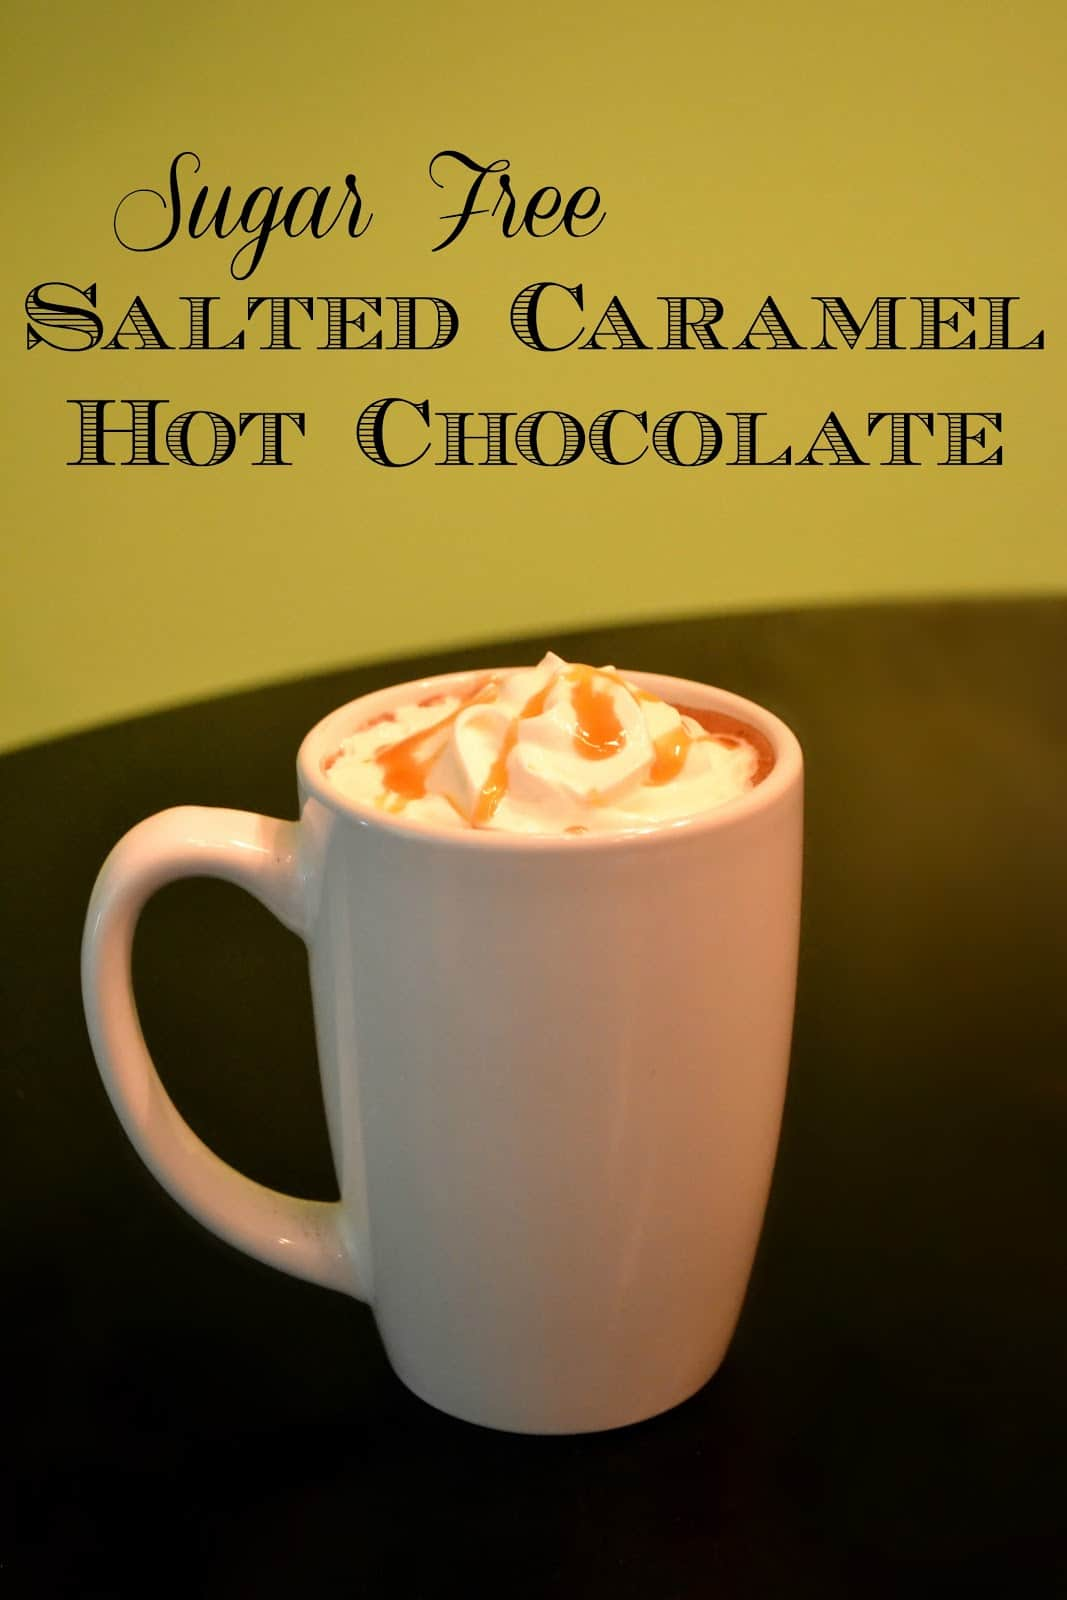 Sugar Free Salted Caramel Hot Chocolate - As The Bunny Hops®